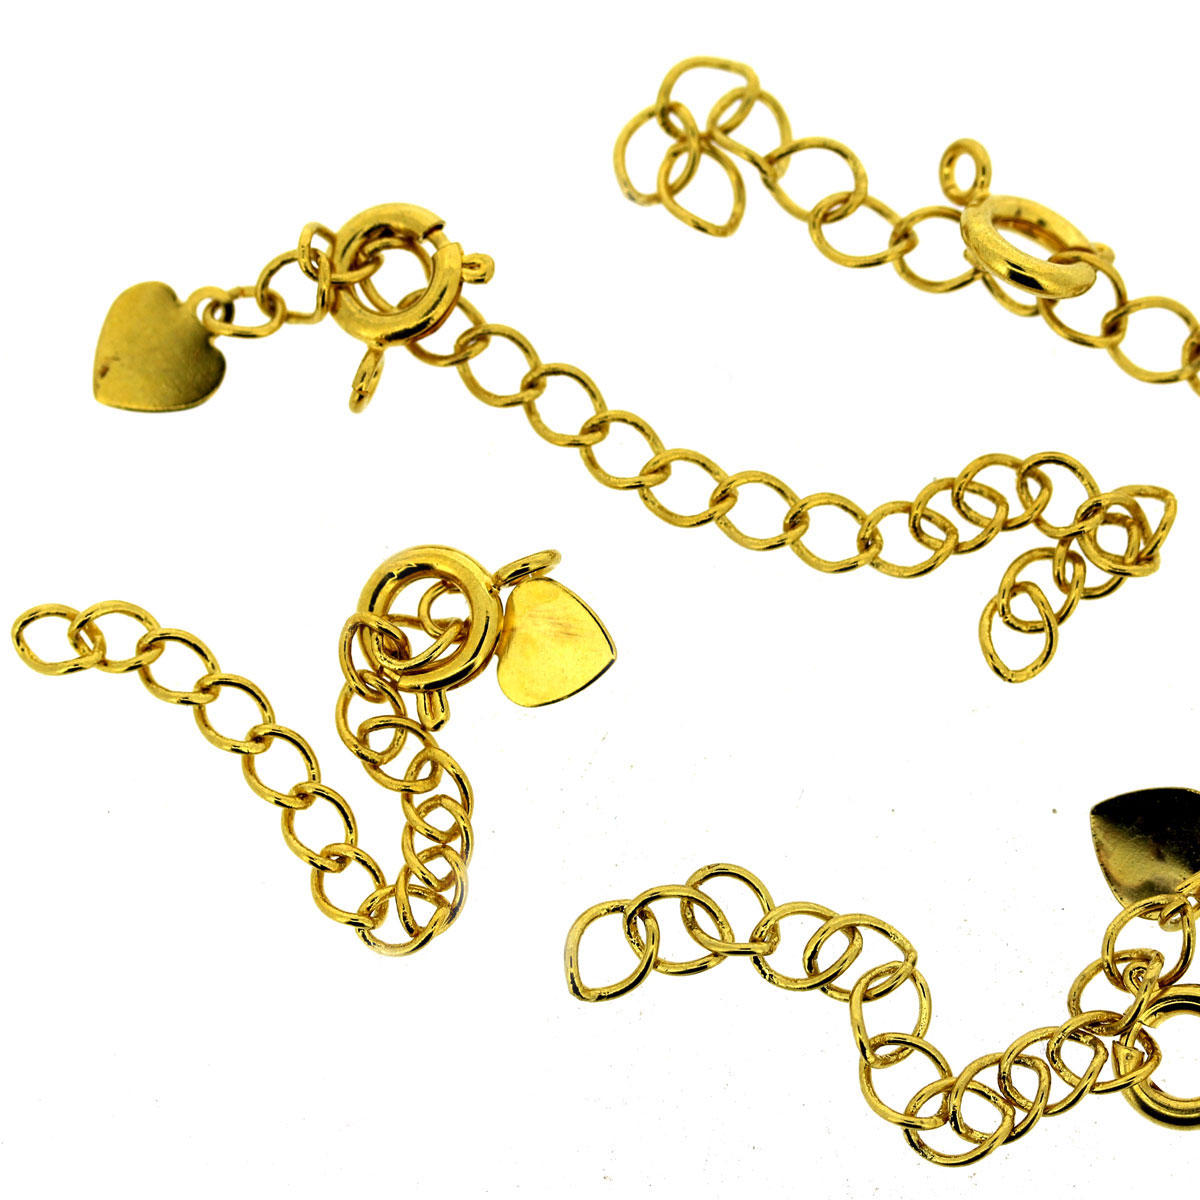 Gold Extender Chain with Heart and Bolt